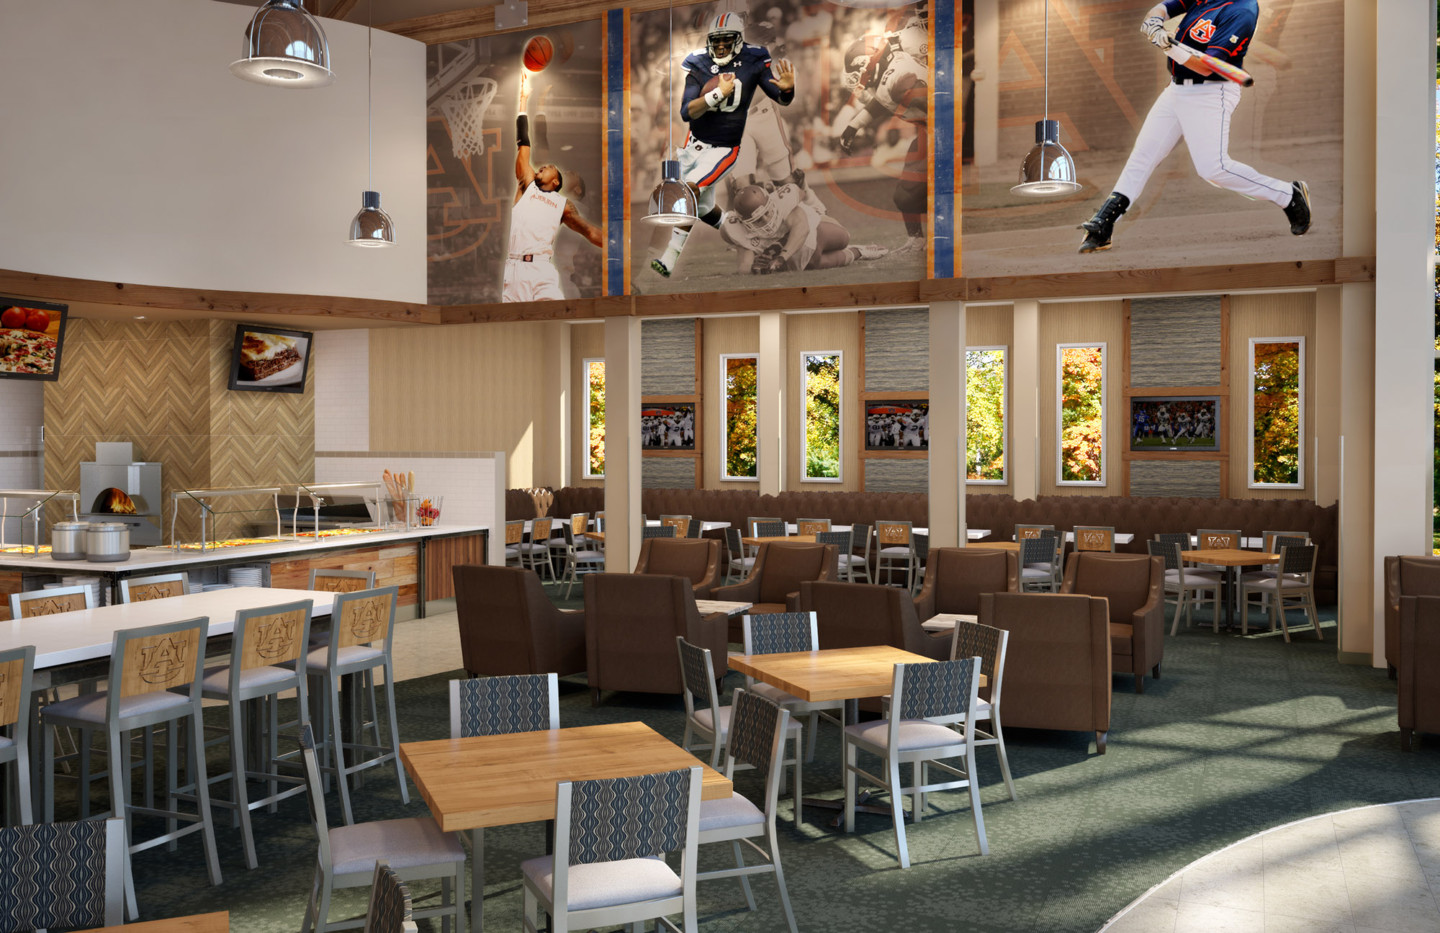 AUBURN WELLNESS KITCHEN ATHLETIC DINING VIEW 03